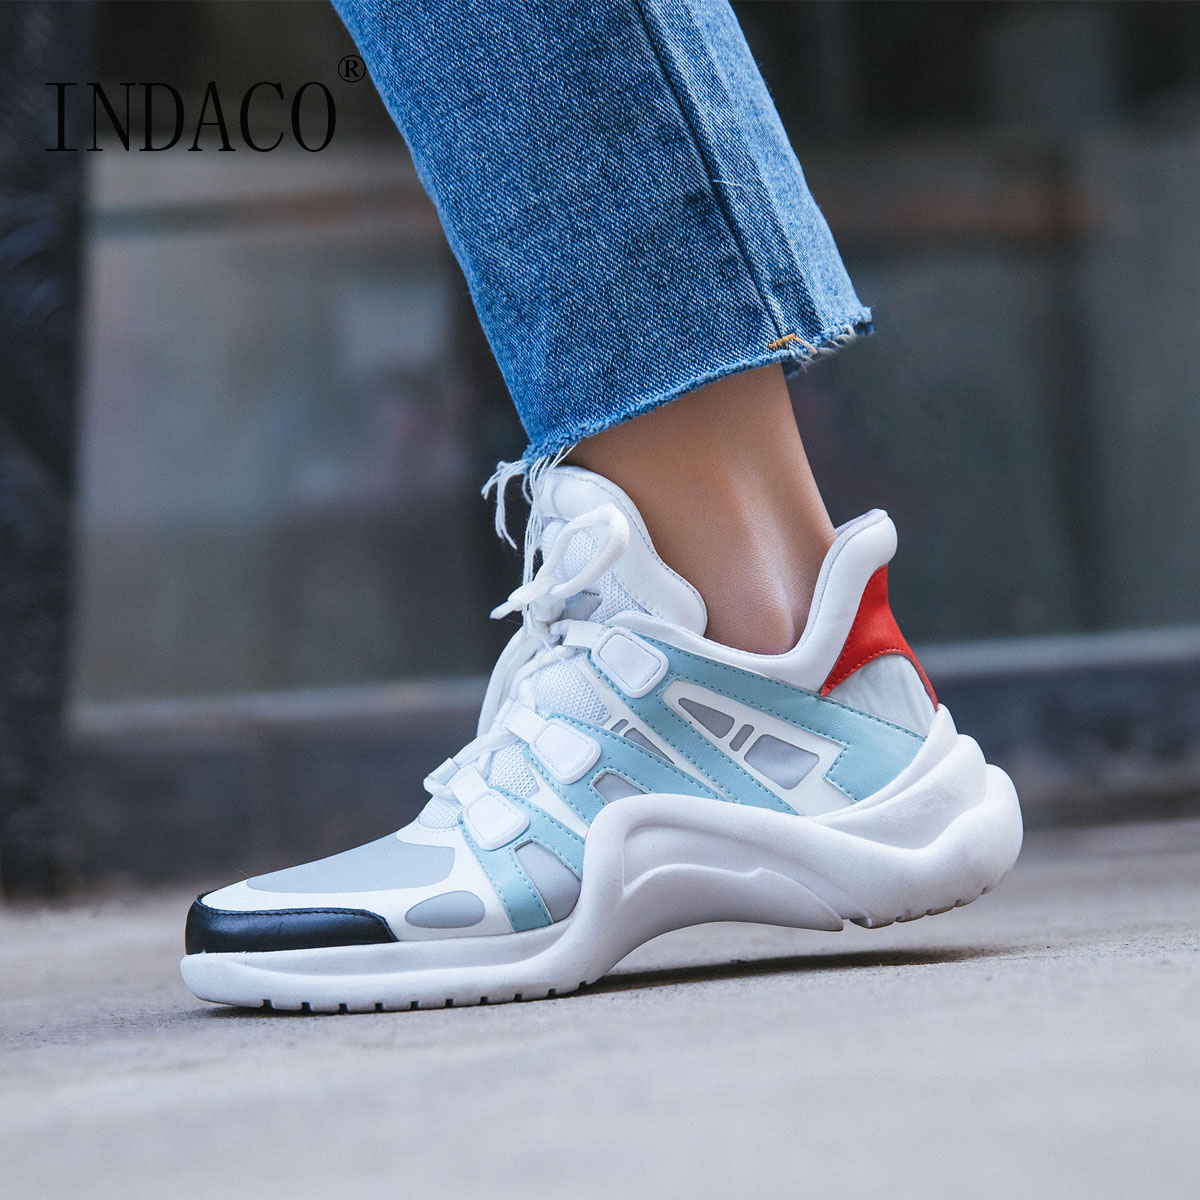 Breathable Women Sneakers Leather 2018 New Designer Shoes Casual Footwear Fashion Sneakers Women 5cm 2018 new casual leather sneakers red black lace up comfortable footwear women sneakers shoes 6 5cm